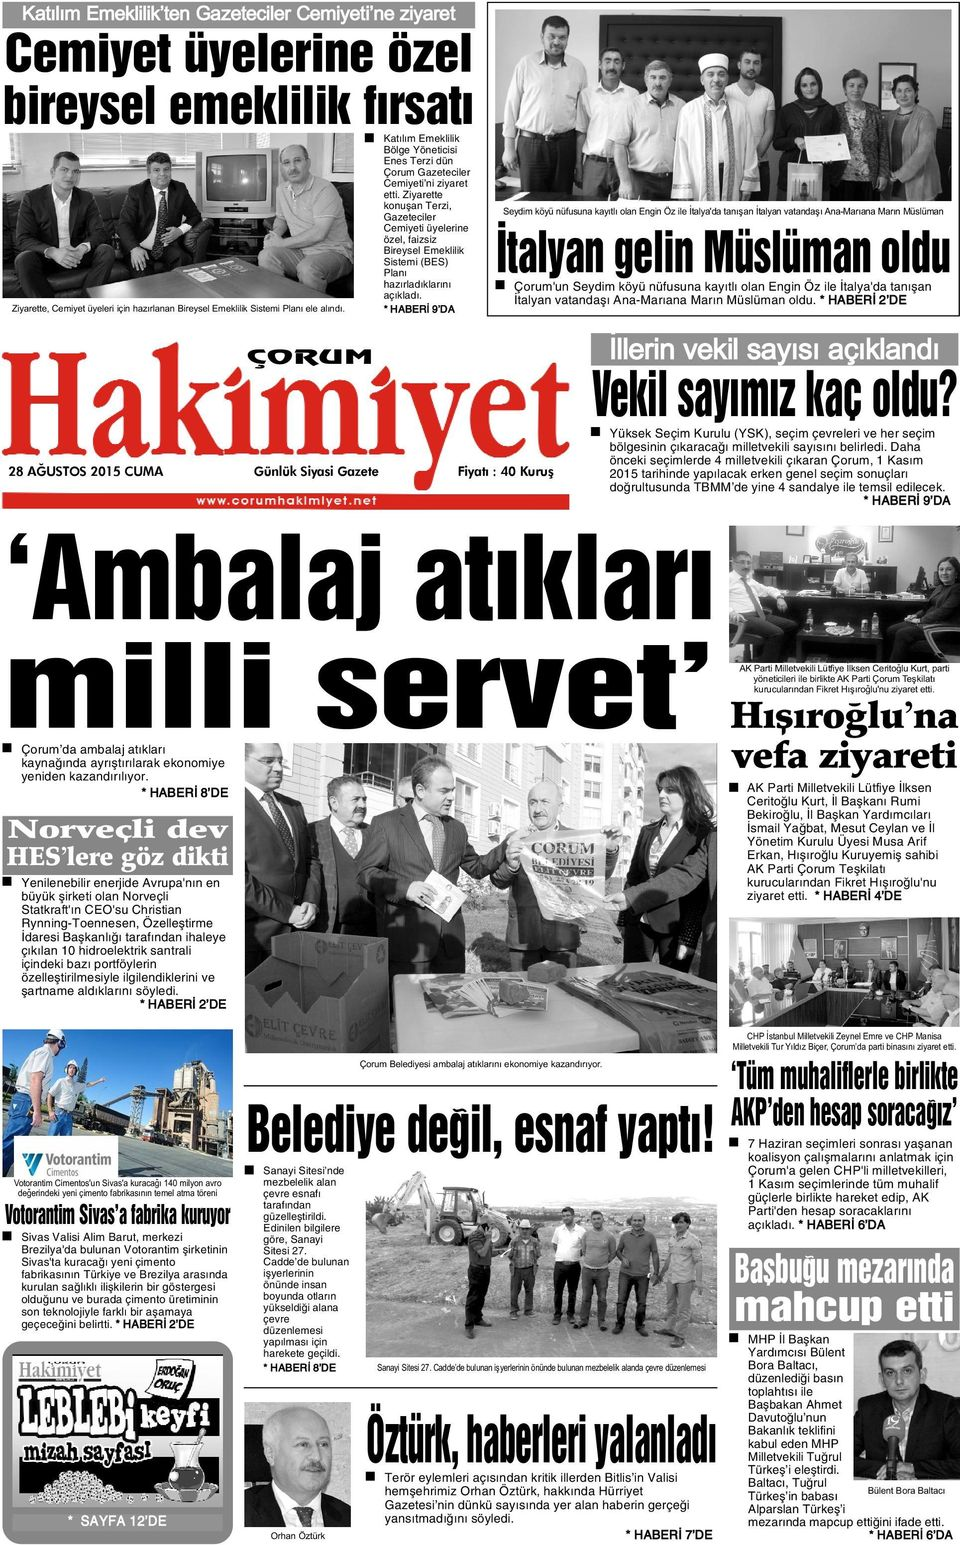 Ambalaj Atyklary Milli Servet Pdf Free Download